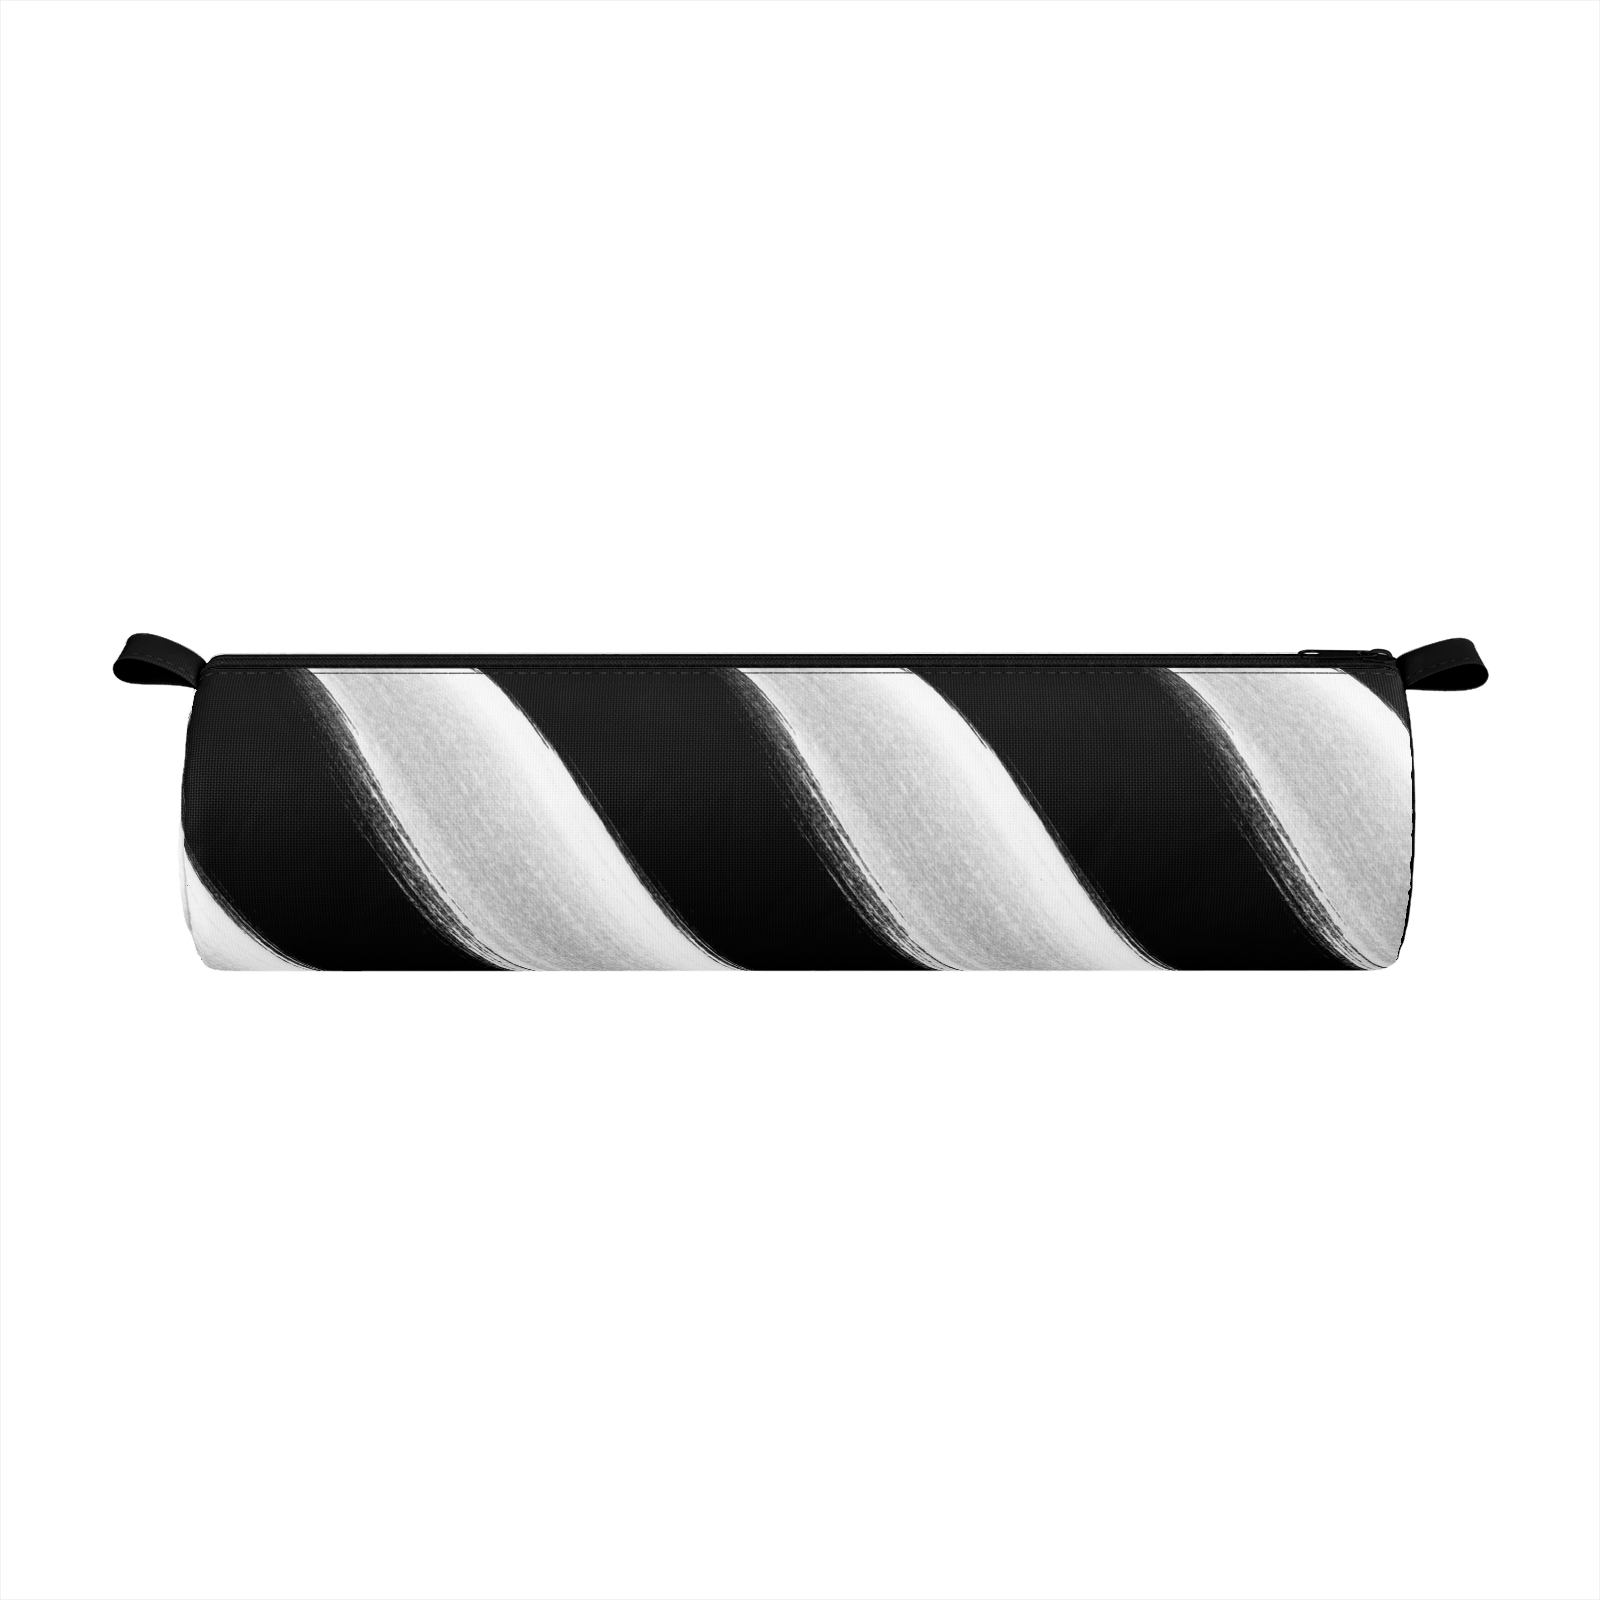 MIKEY MANFS PAINTED STRIPE PENCIL CASE